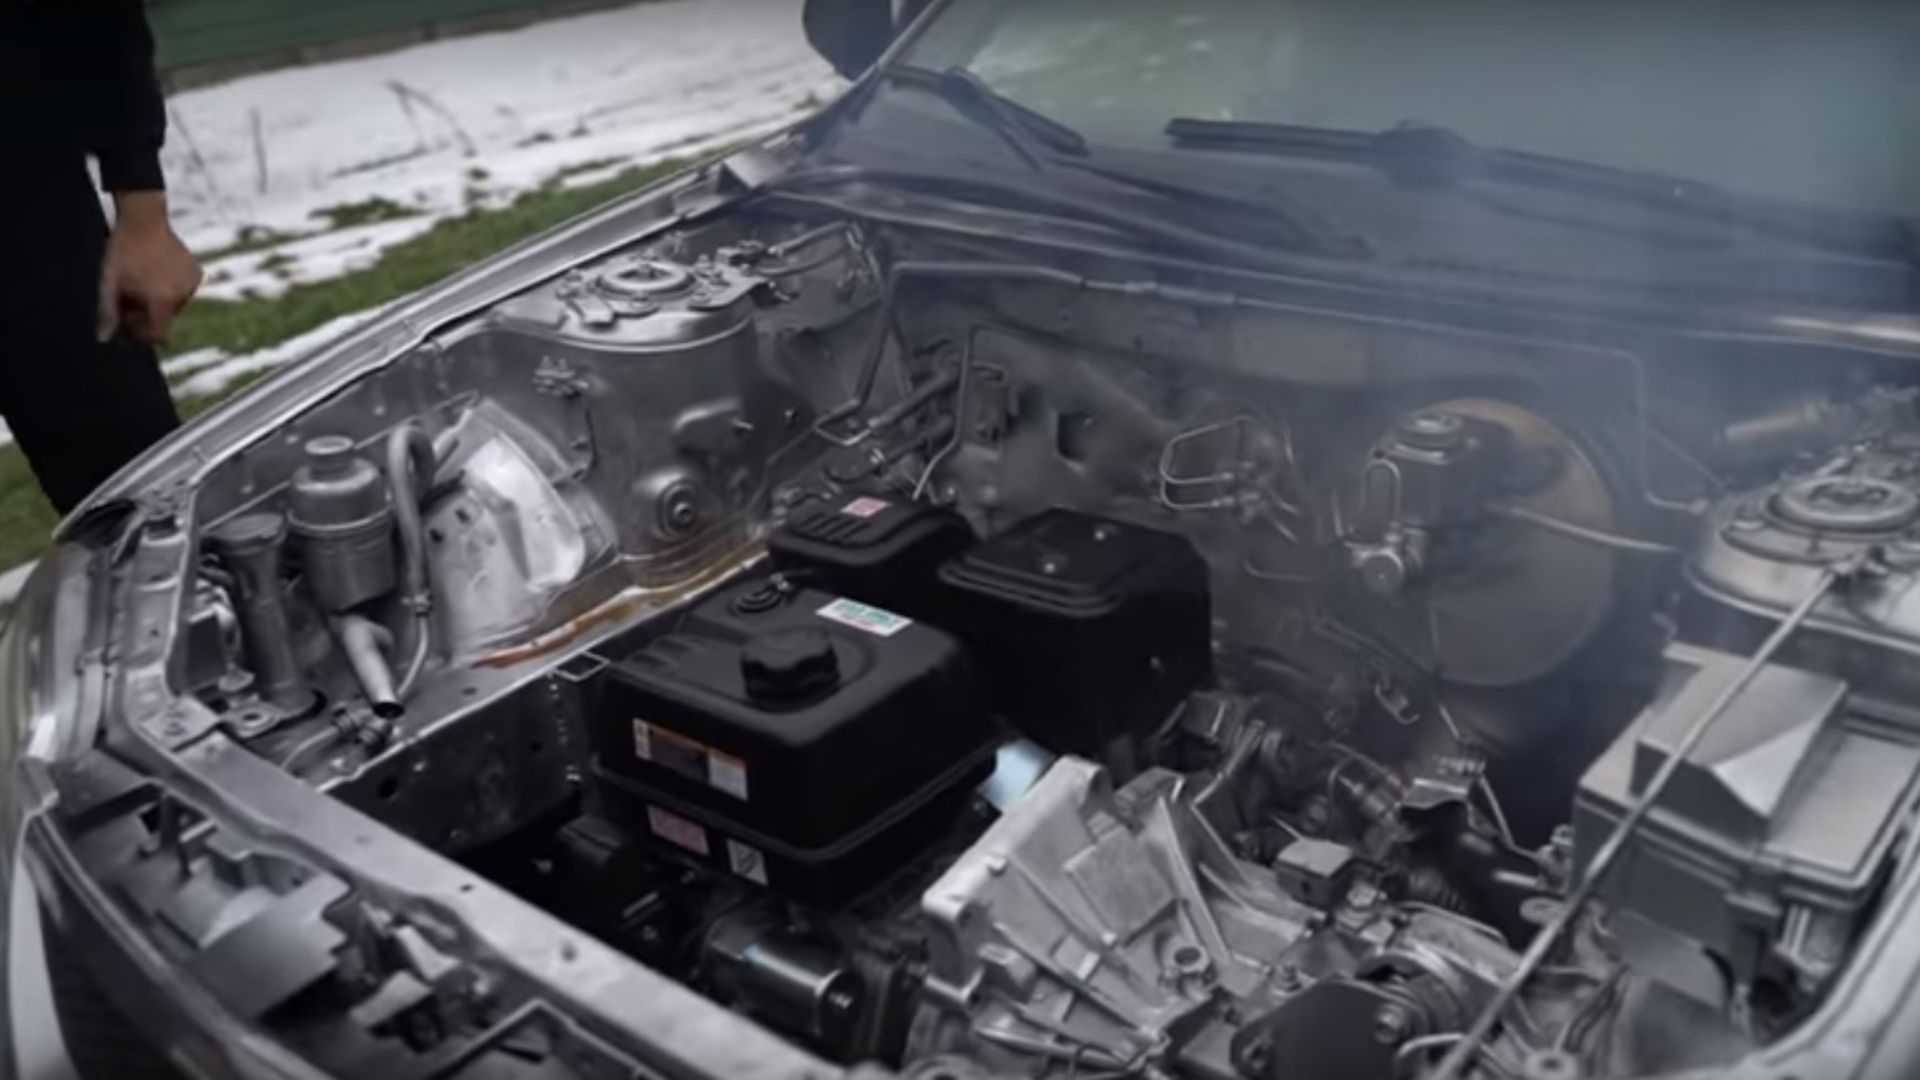 Crazy Guys Swap Lawnmower Engine Into Mazda Protege